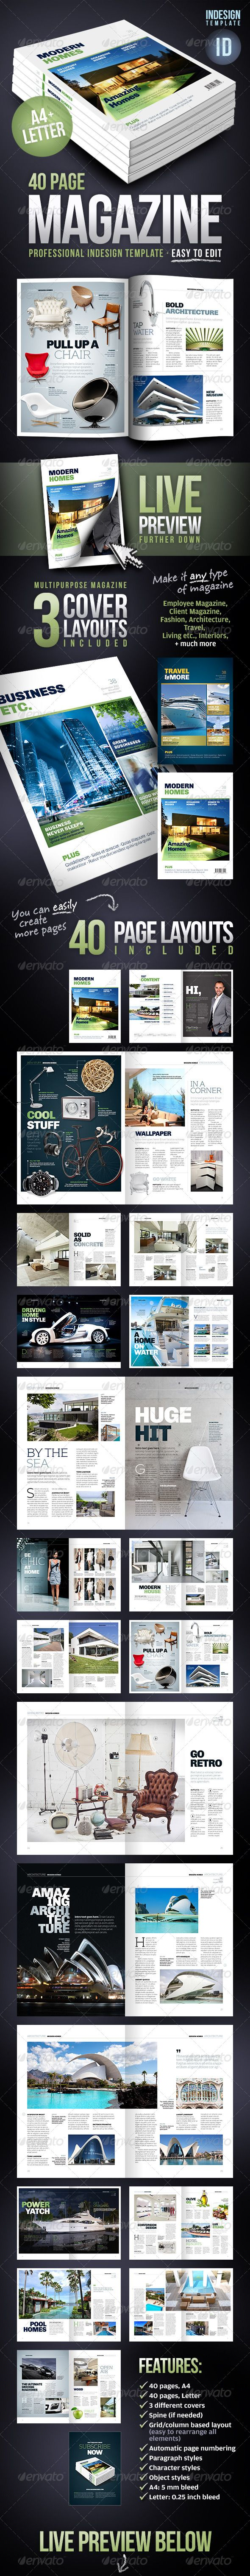 Multipurpose 40 Page Magazine - A4 + Letter Template #design  Download: http://graphicriver.net/item/multipurpose-40-page-magazine-a4-letter/2704345?ref=ksioks